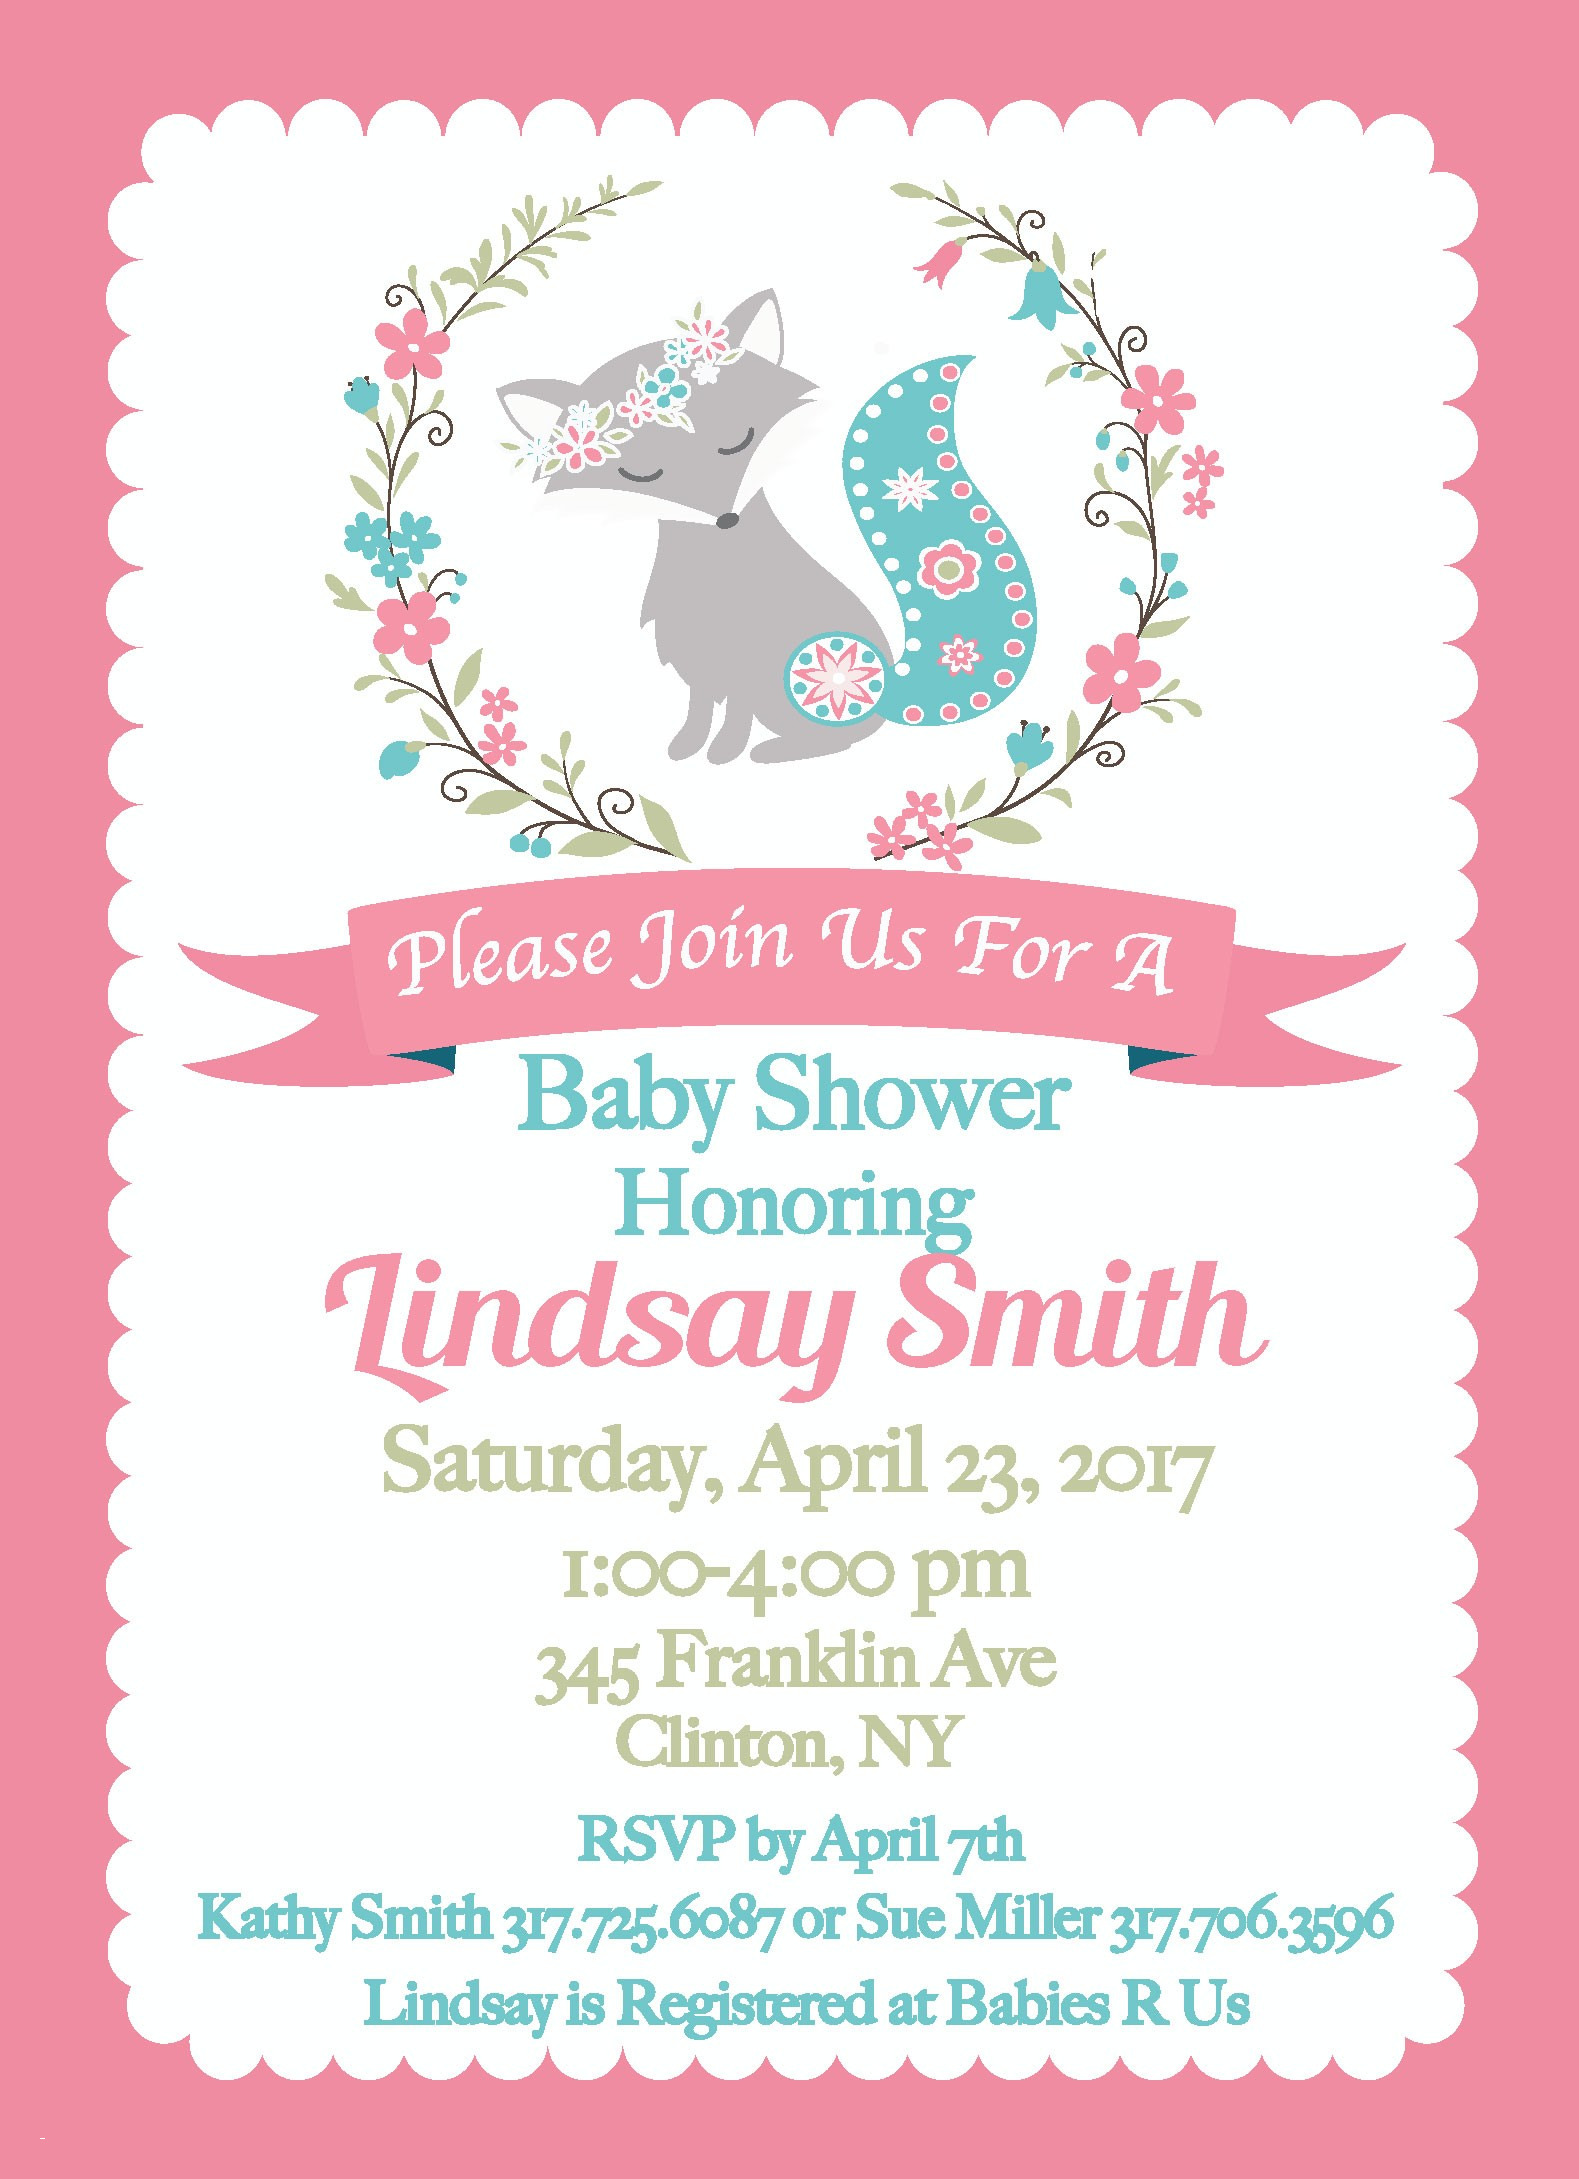 Full Size of Baby Shower:63+ Delightful Cheap Baby Shower Invitations Image Inspirations Baby Shower Gifts For Girls Arreglos Para Baby Shower Baby Shower Gift Ideas Baby Shower Wording